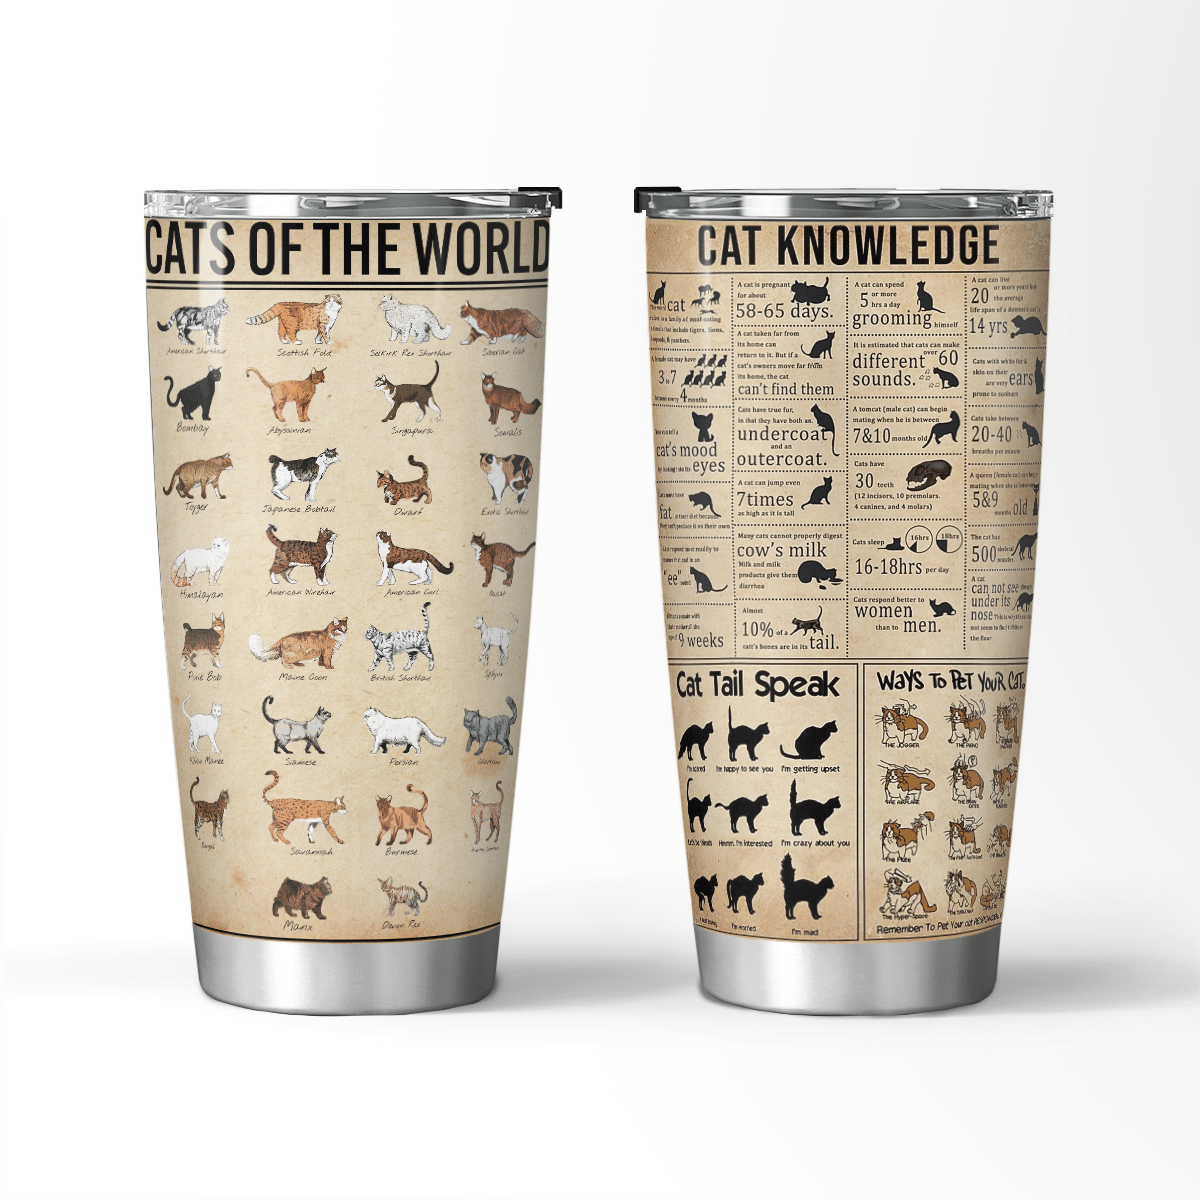 Cats of the world knowledge farmer love tumbler cup